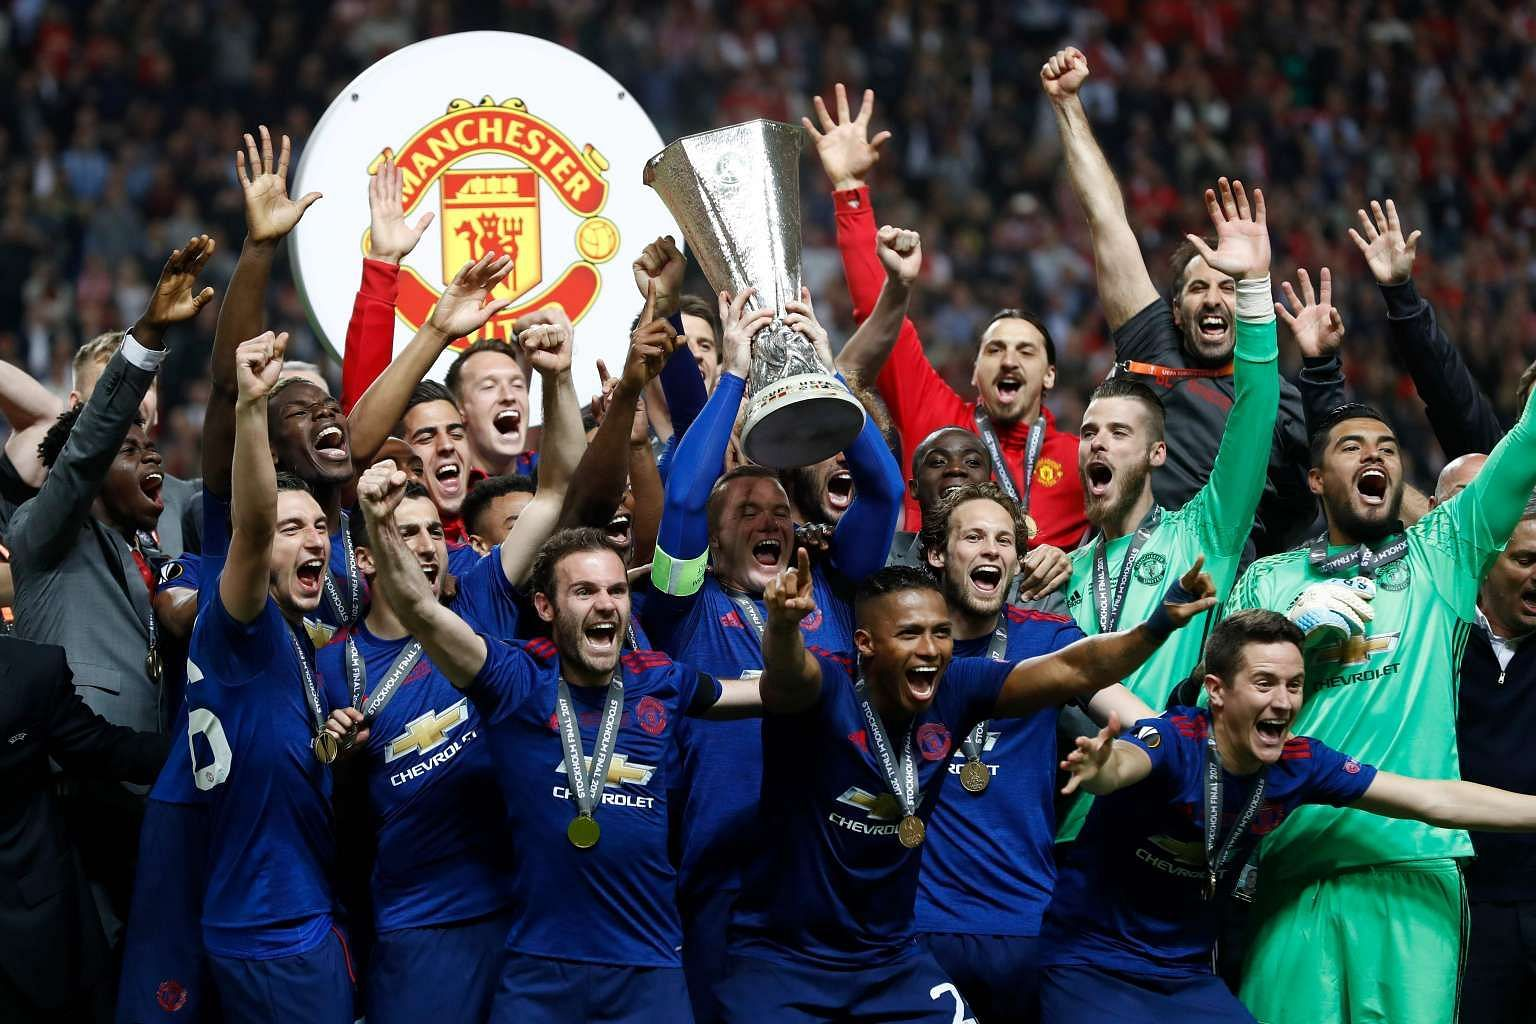 Above: Manchester United players with the Europa League trophy after beating Ajax Amsterdam 2-0 in Stockholm on Wednesday. Left: Jose Mourinho celebrates with members of his coaching staff.